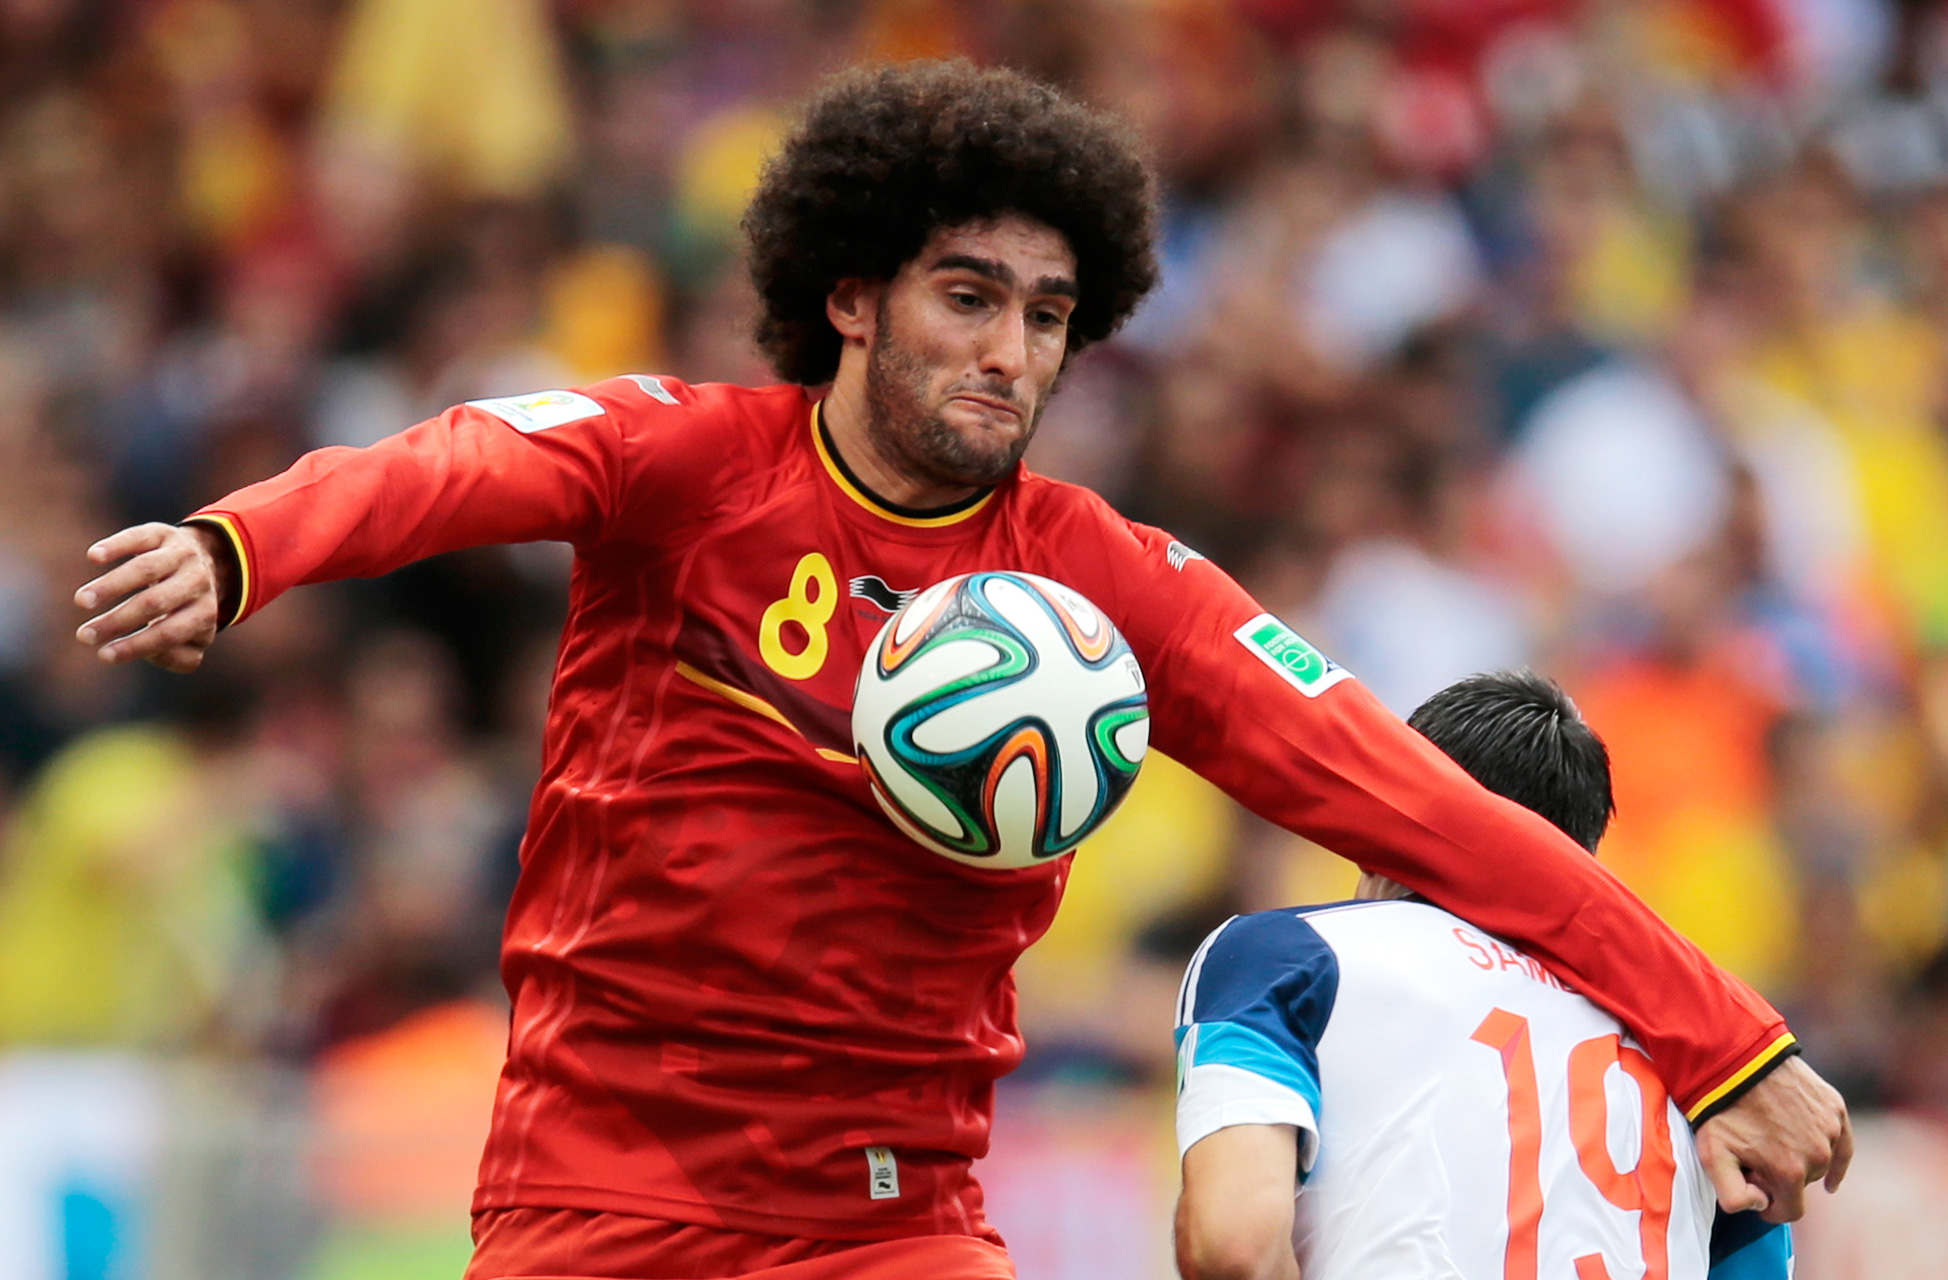 Marouane Fellaini joins on loan to strengthen the midfield